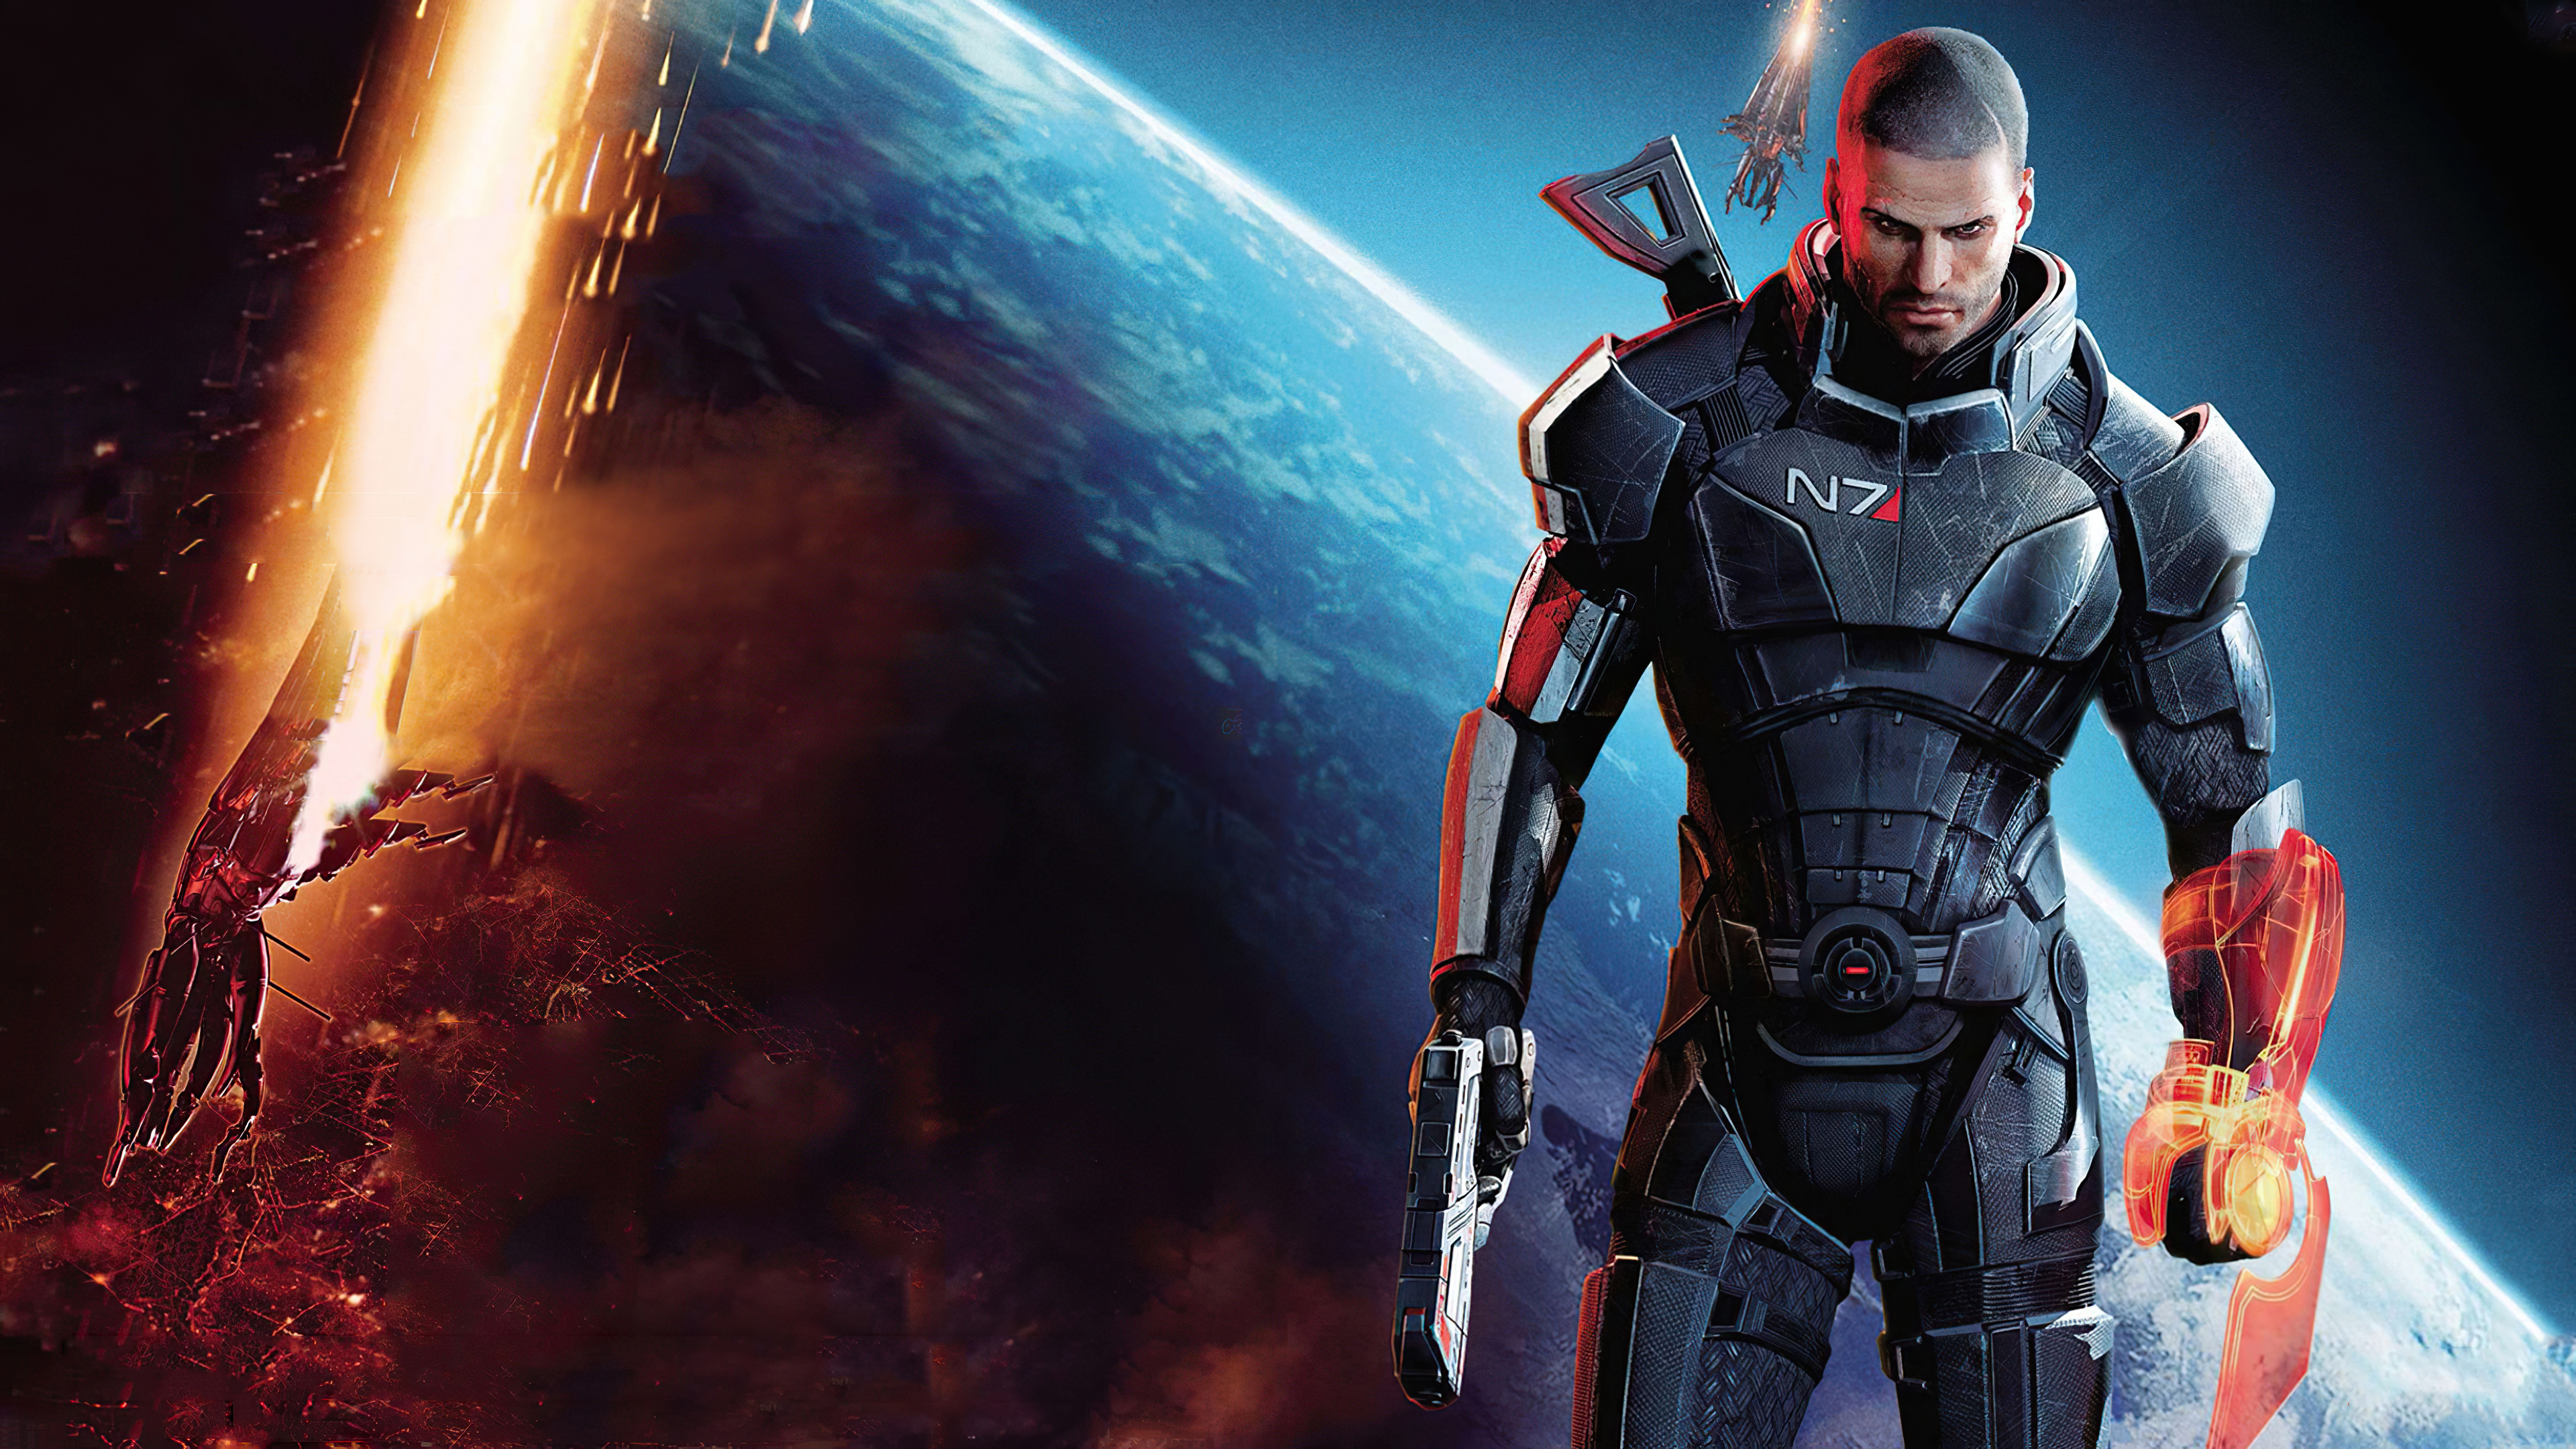 Mass Effect 3 Pc Version Hd Games 4k Wallpapers Images Backgrounds Photos And Pictures